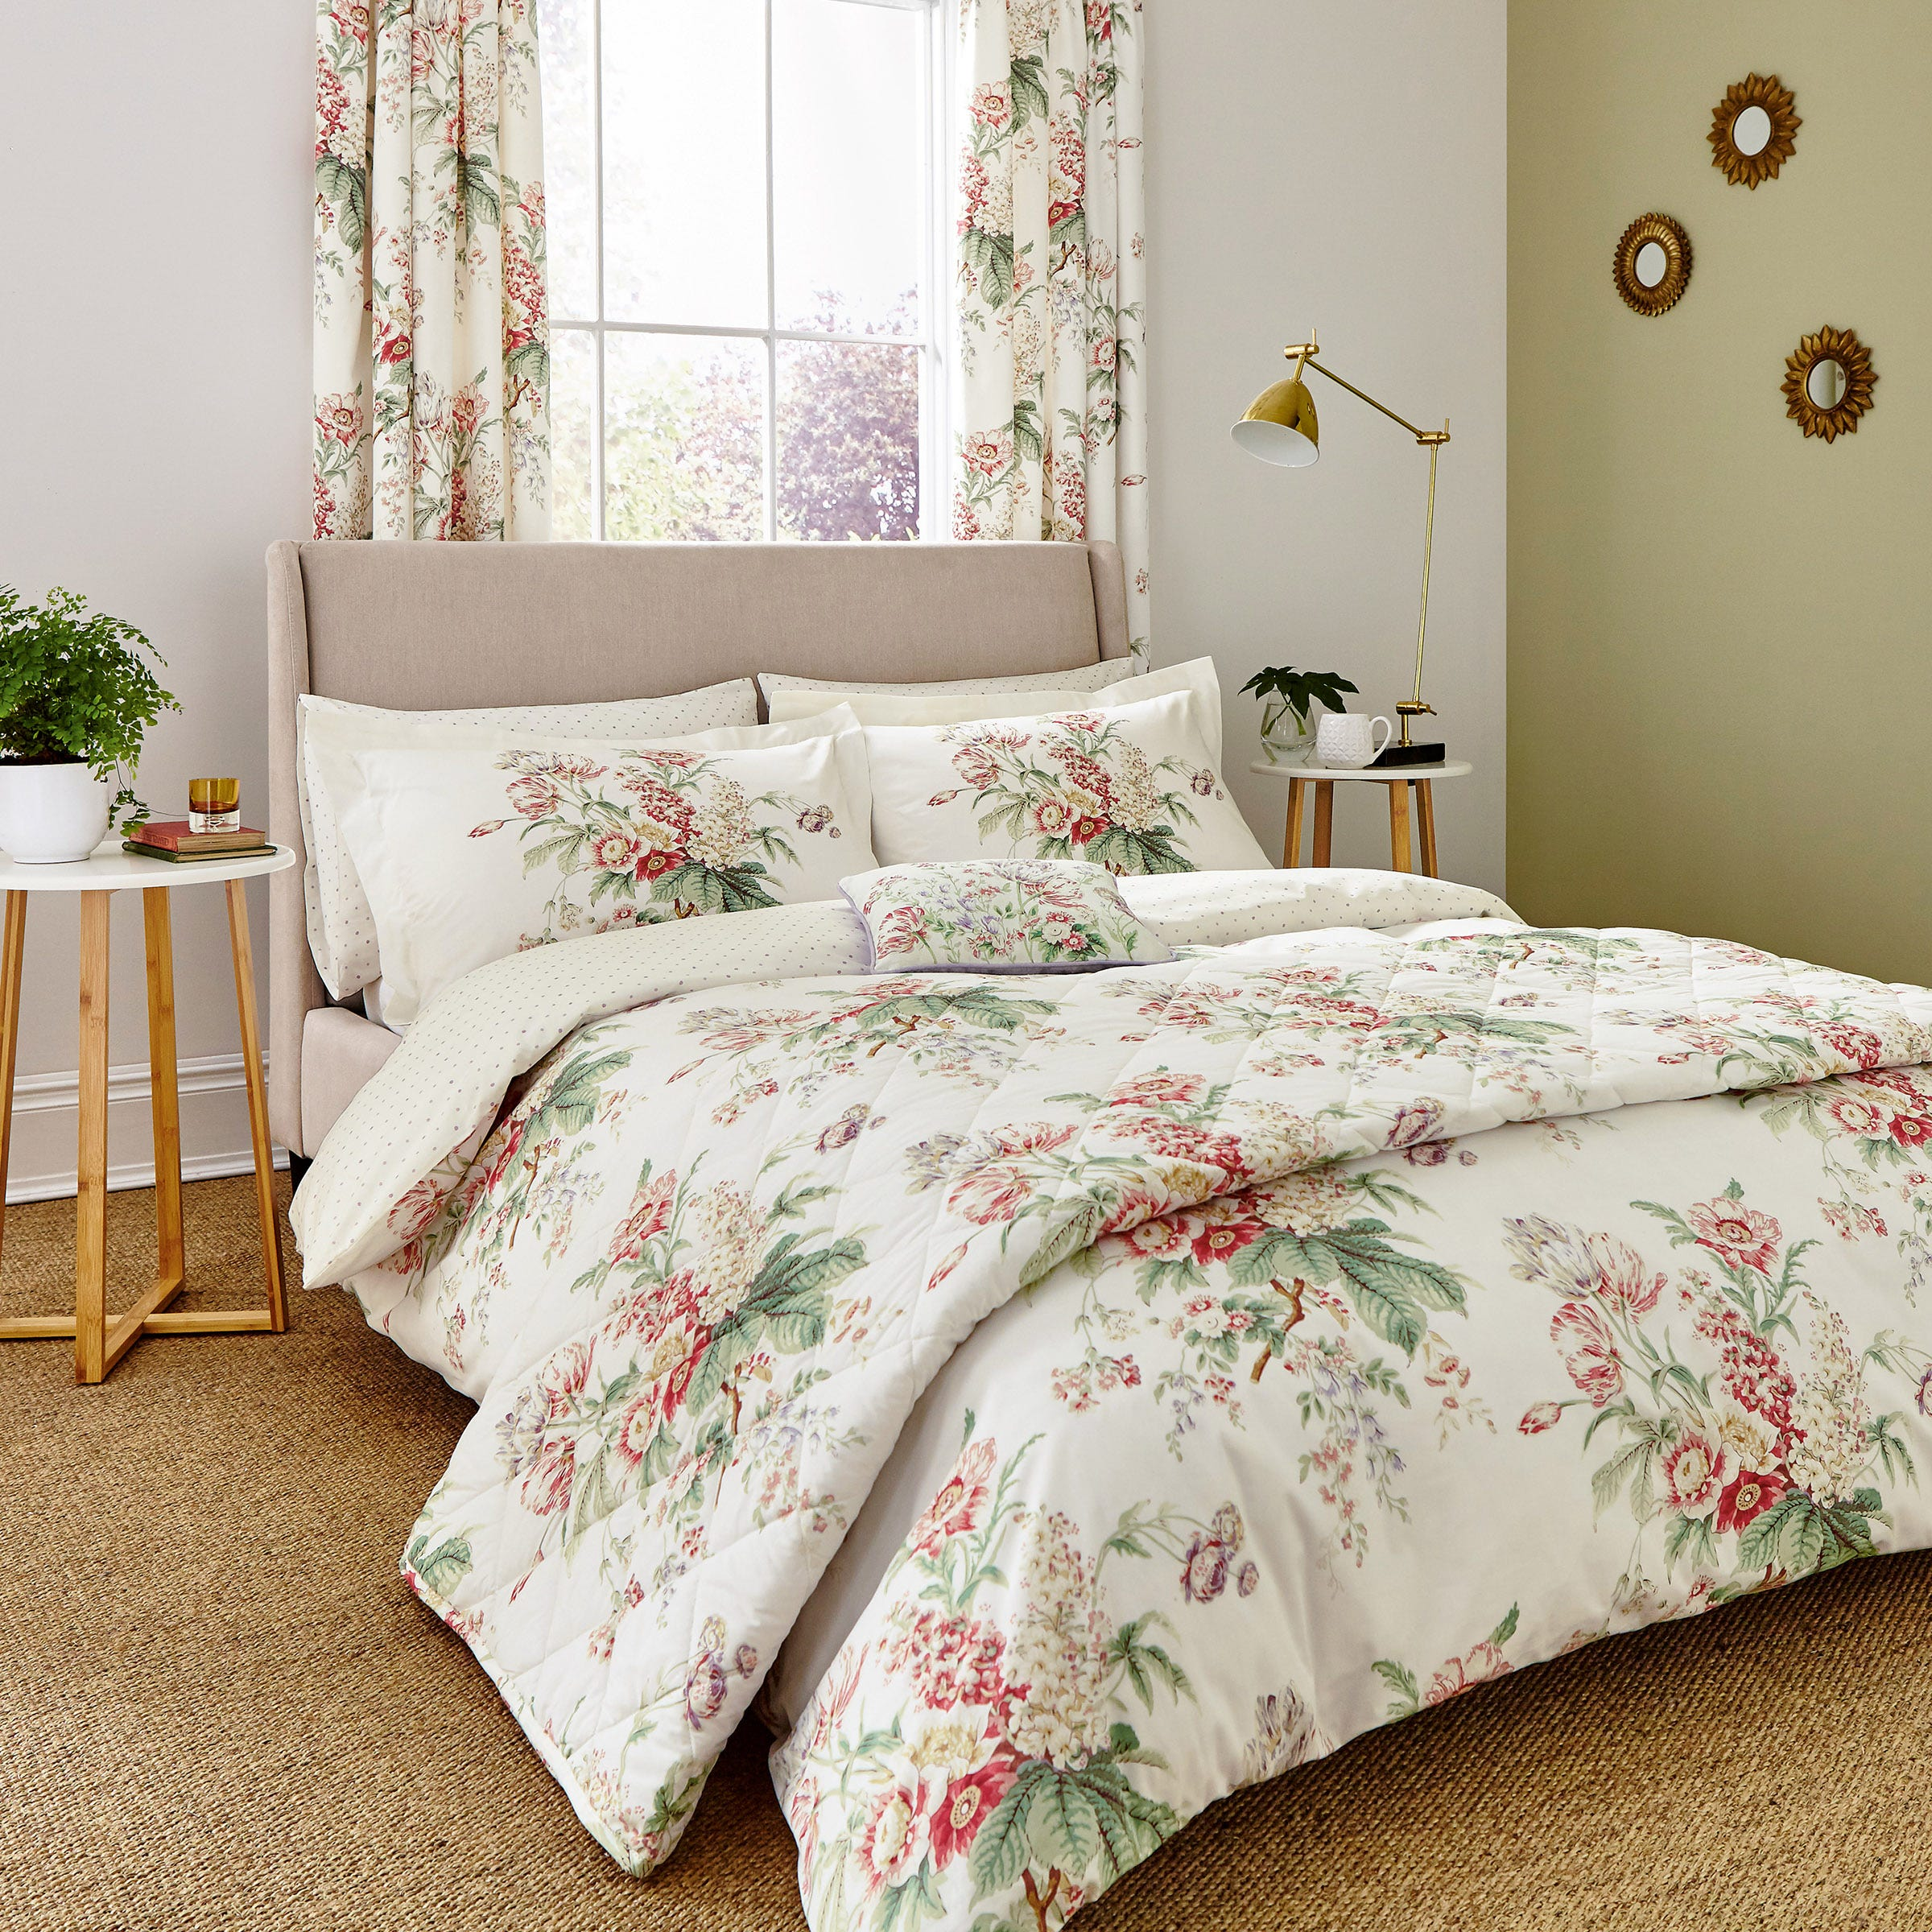 Sanderson Bedding Tournier Super Kingsize Duvet Cover Strawberry